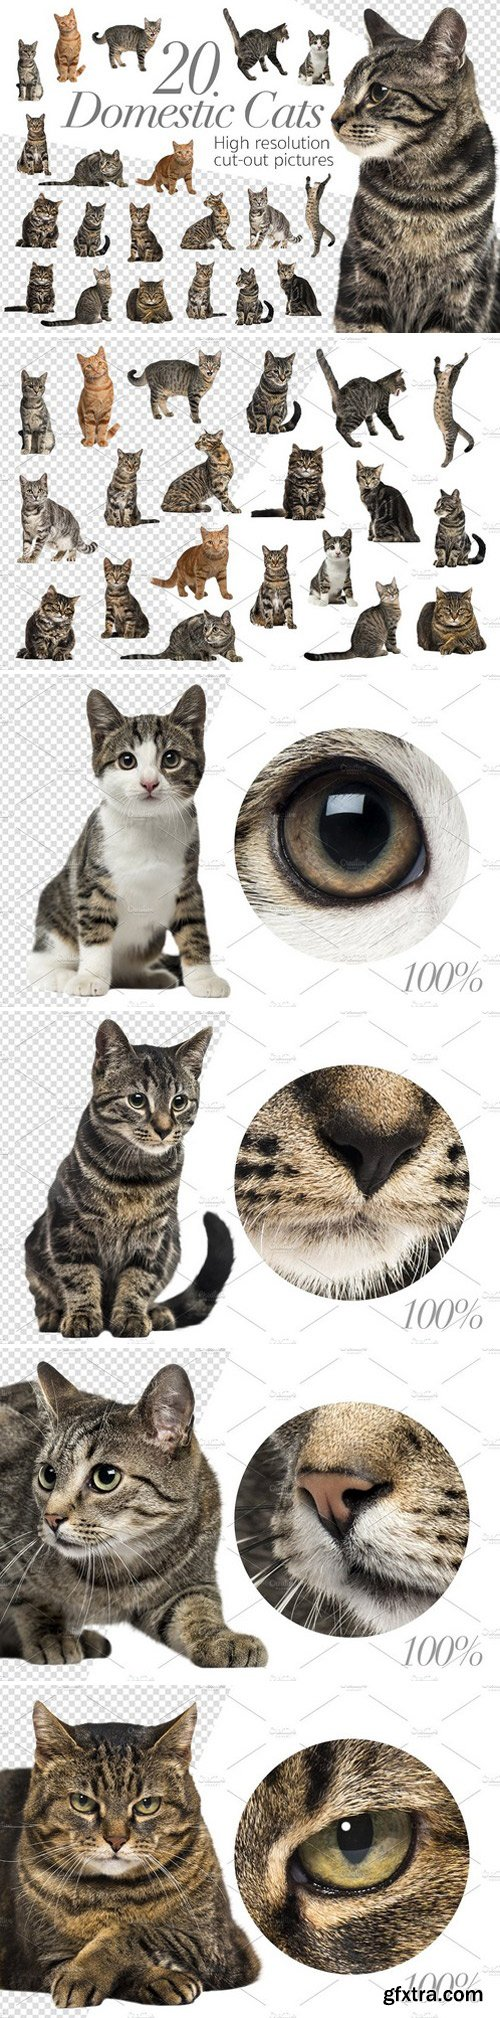 CM - 20 Domestic Cats - Cut-out Pictures 2316524